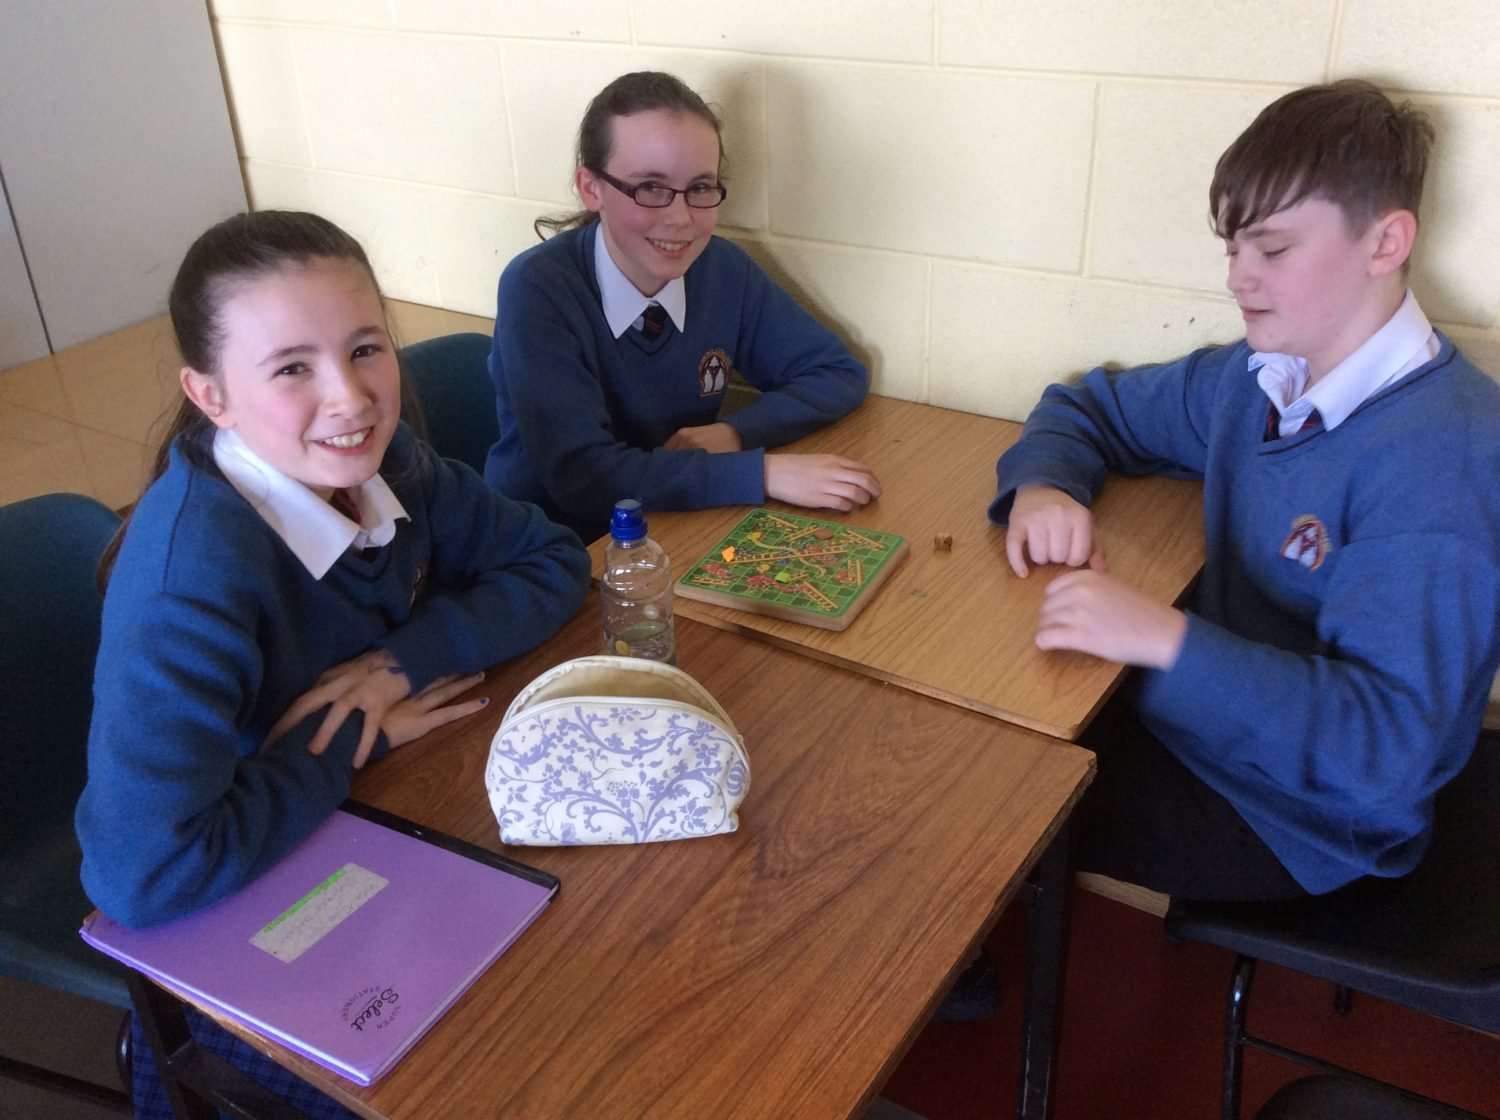 March 2017: Desmond College school students participating in the imeachtaí that were happening for Seachtain na Gaeilge